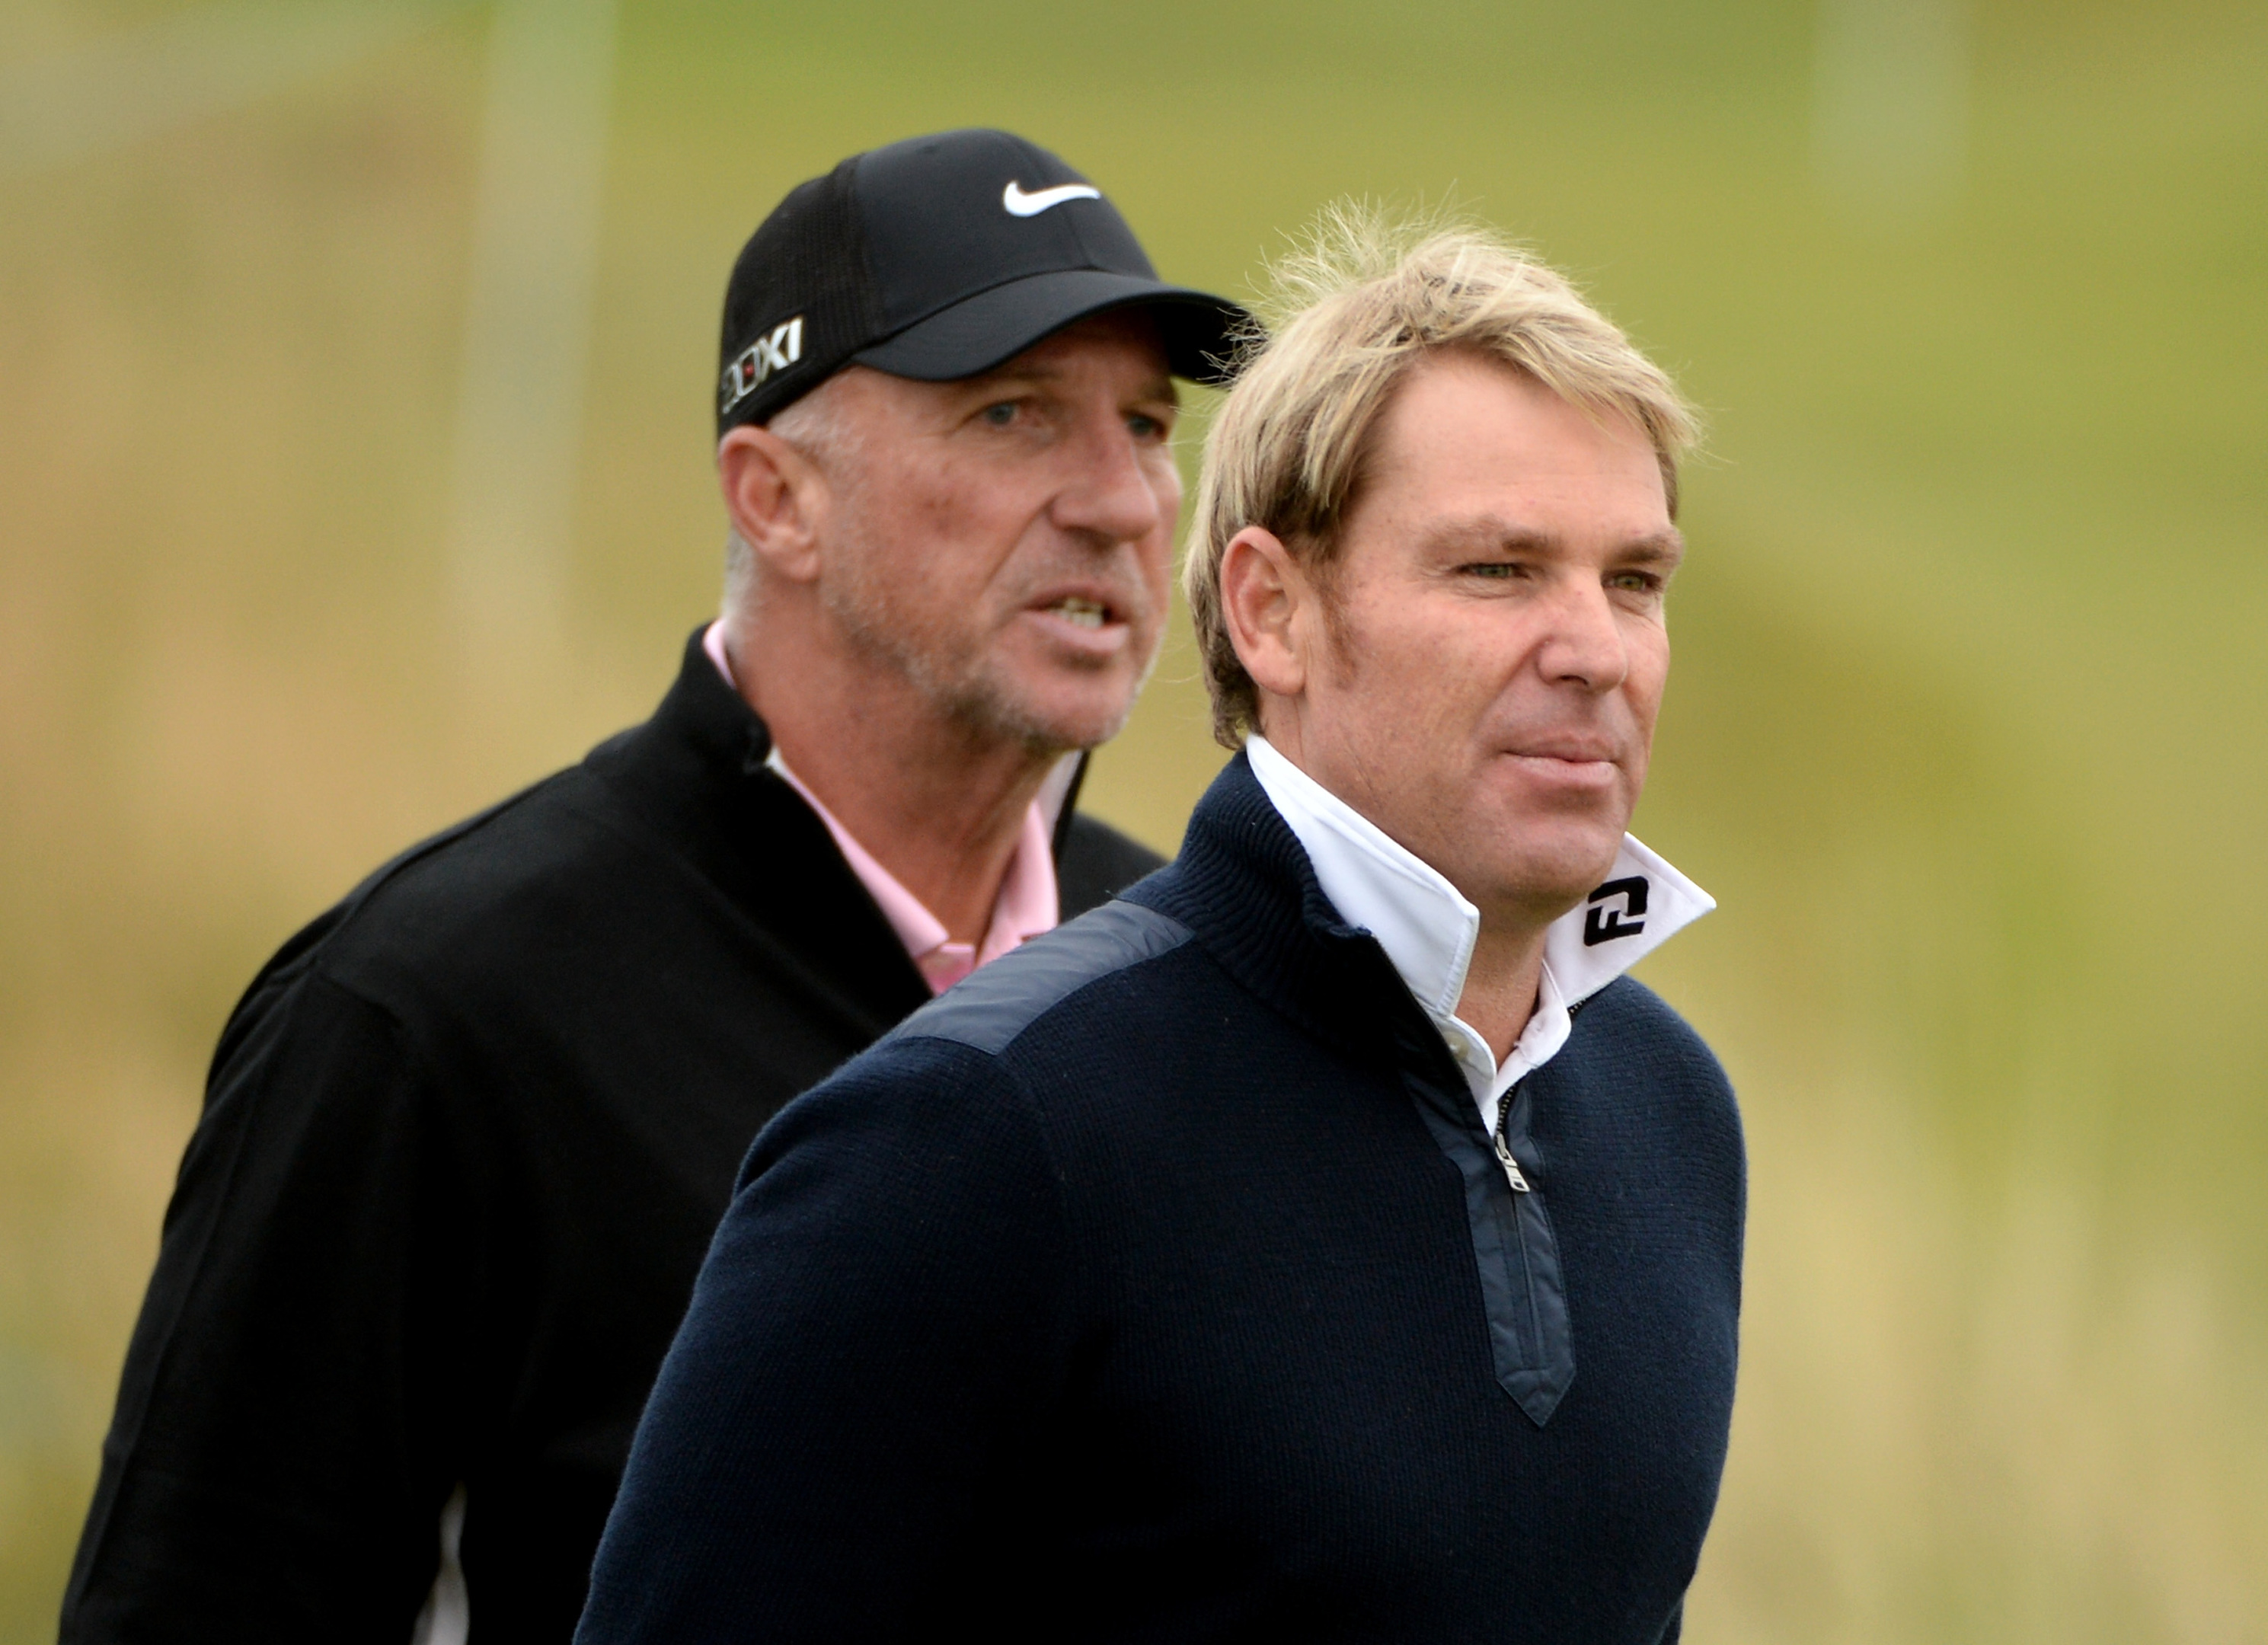 Shane Warne and Sir Ian Botham at Kingsbarns during a practice round of the Alfred Dunhill Links Championship in 2013